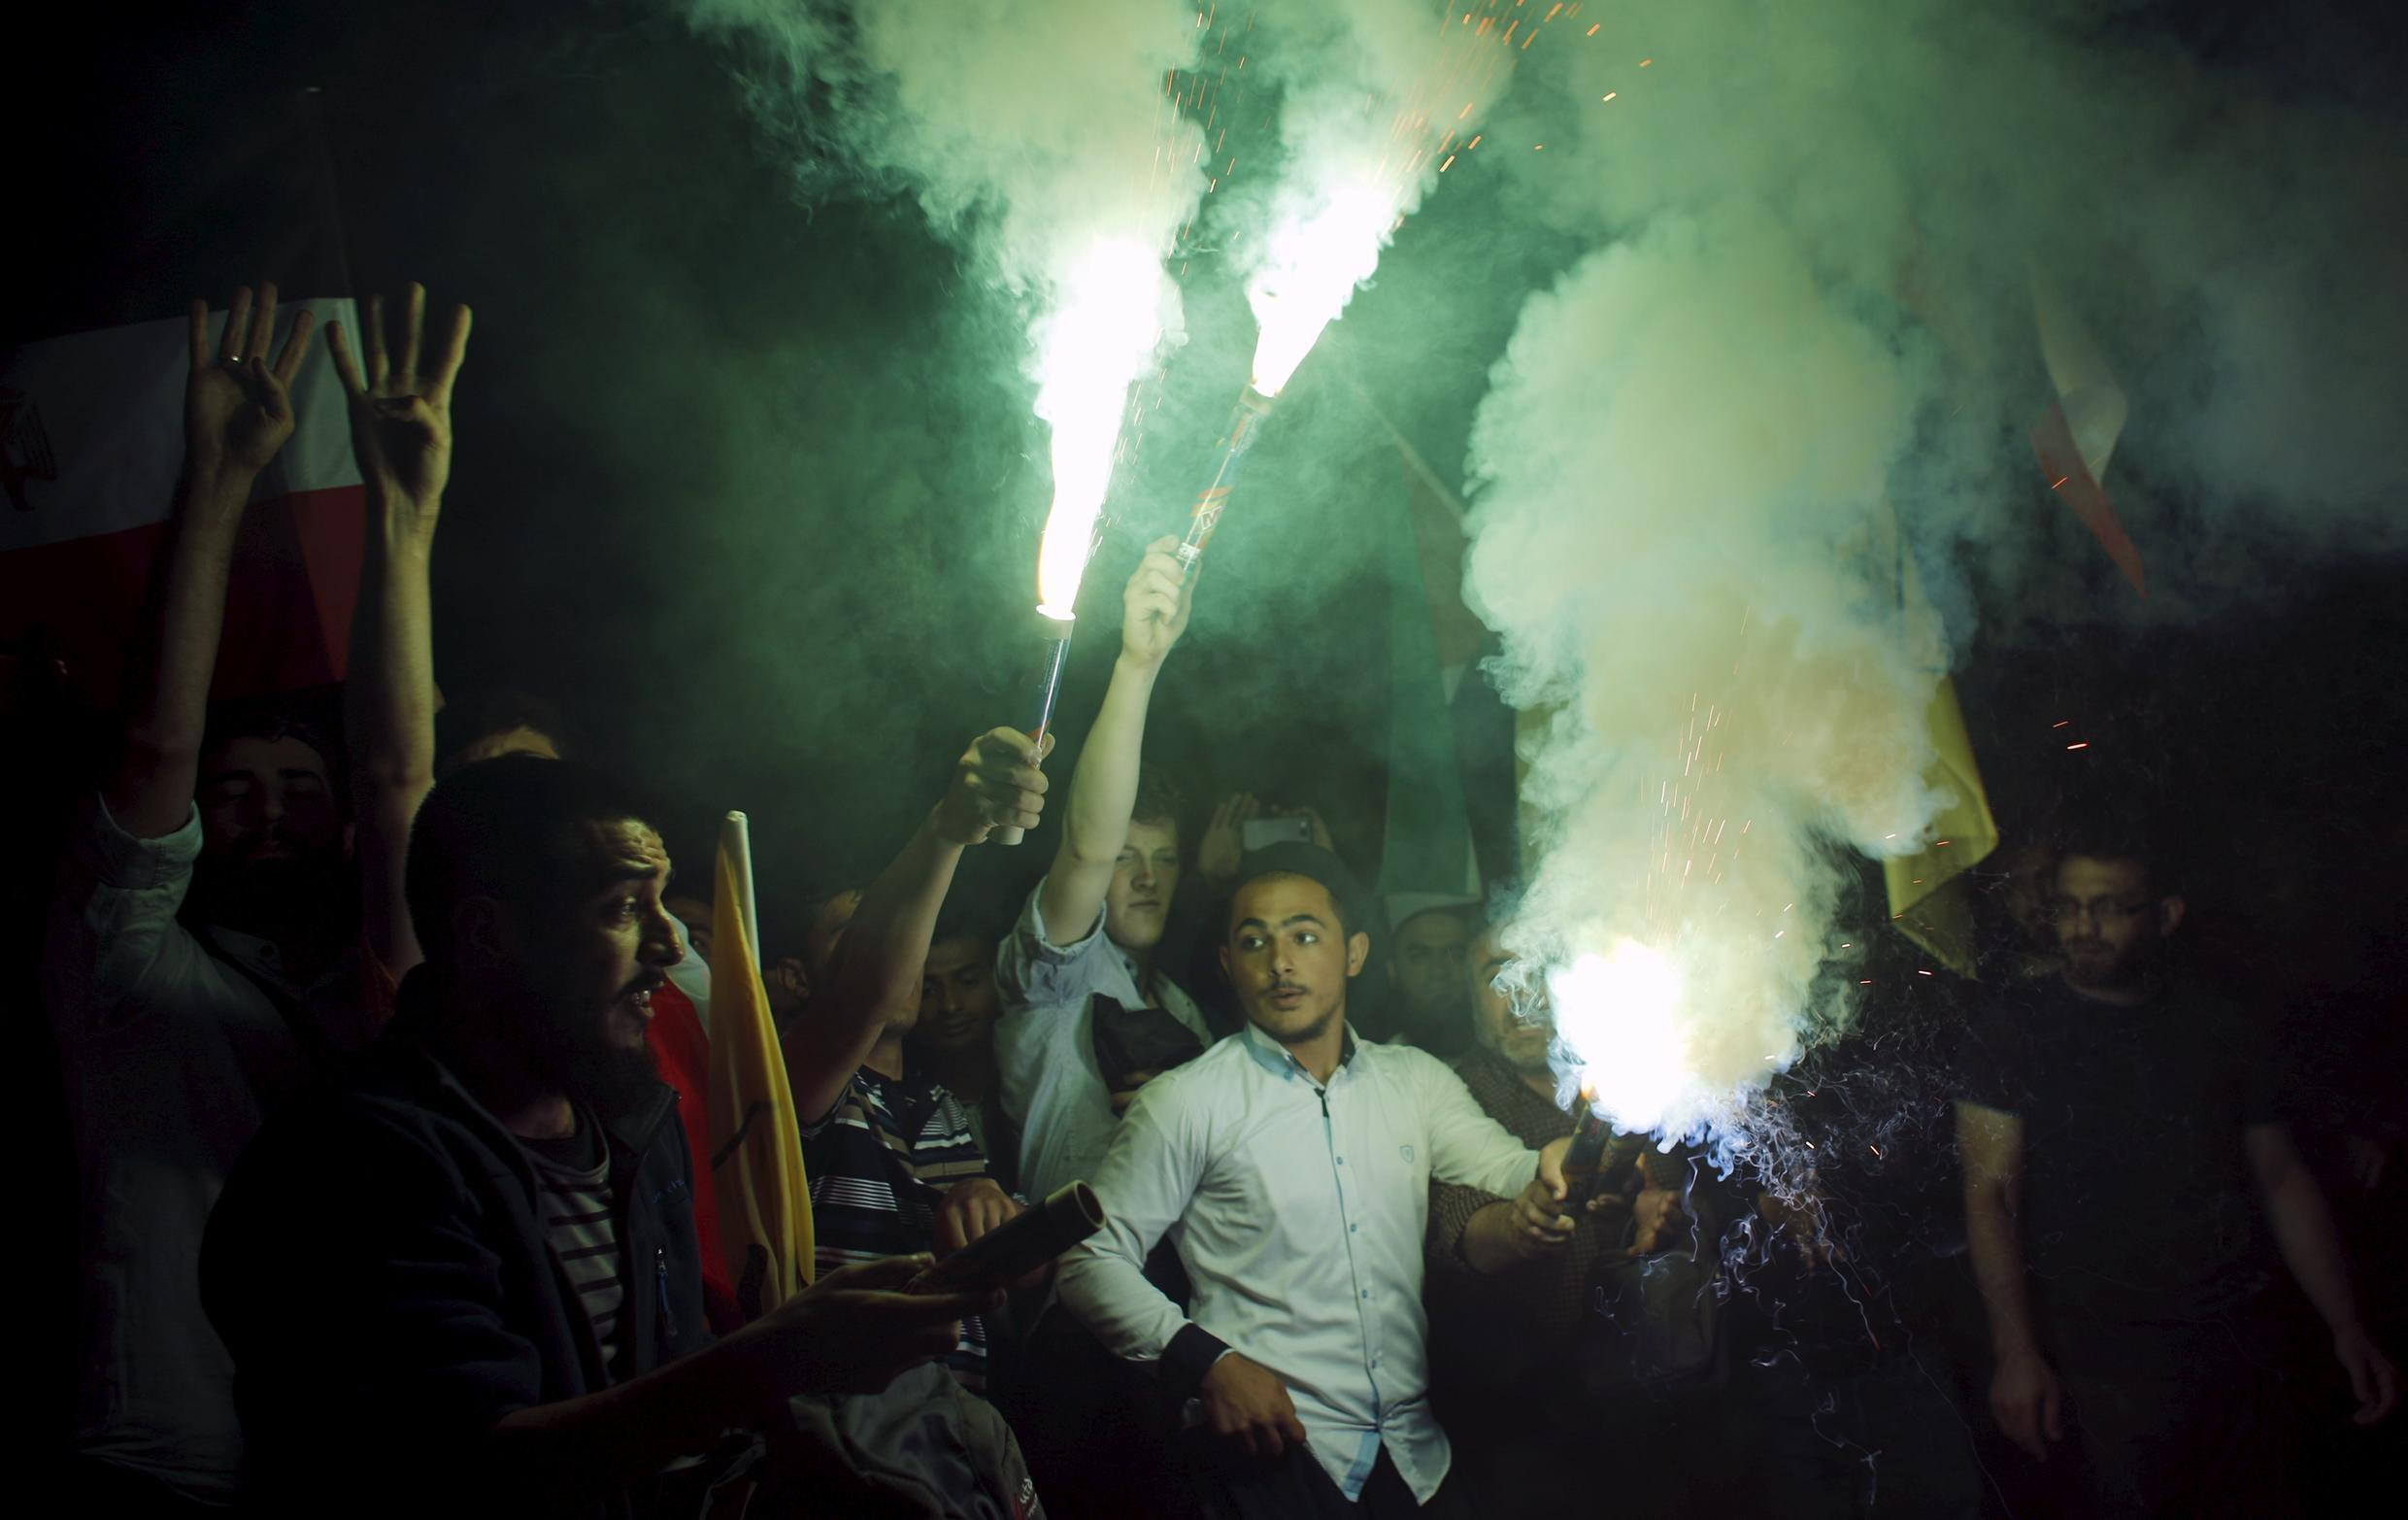 Pro-Islamists demonstrators light flares during a protest against an Egyptian court's decision to sentence deposed President Mohamed Mursi to death, in front of the Egyptian Consulate in Istanbul, Turkey, early June 17, 2015.